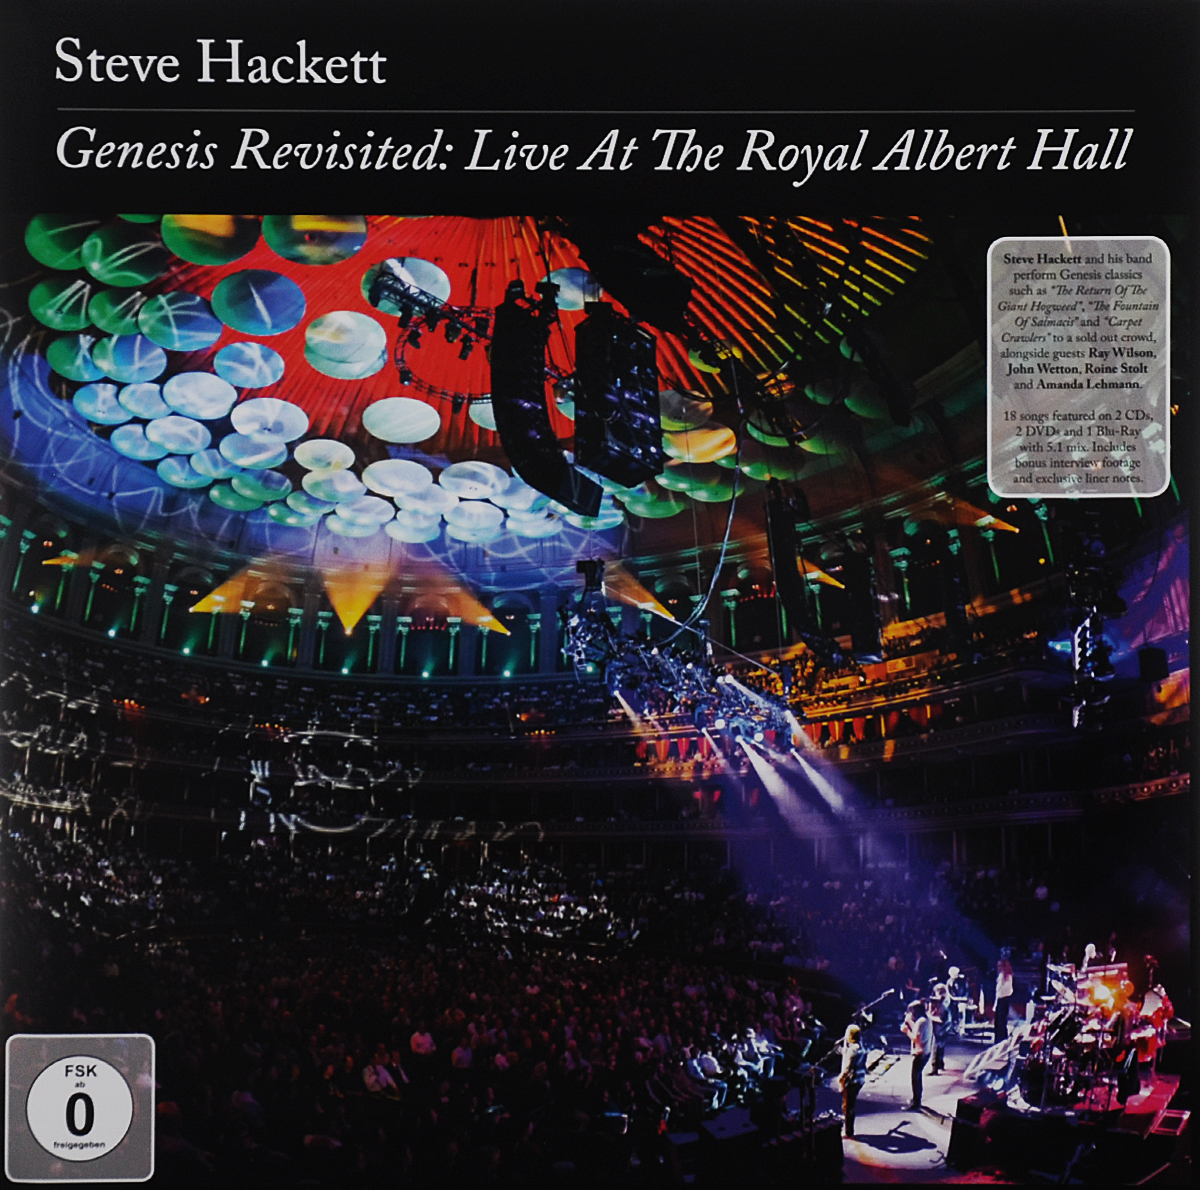 Стив Хэкетт Steve Hackett. Genesis Revisited. Live At The Royal Albert Hall (2 CD + 2 DVD + Blu-ray) pantera pantera reinventing hell the best of pantera cd dvd